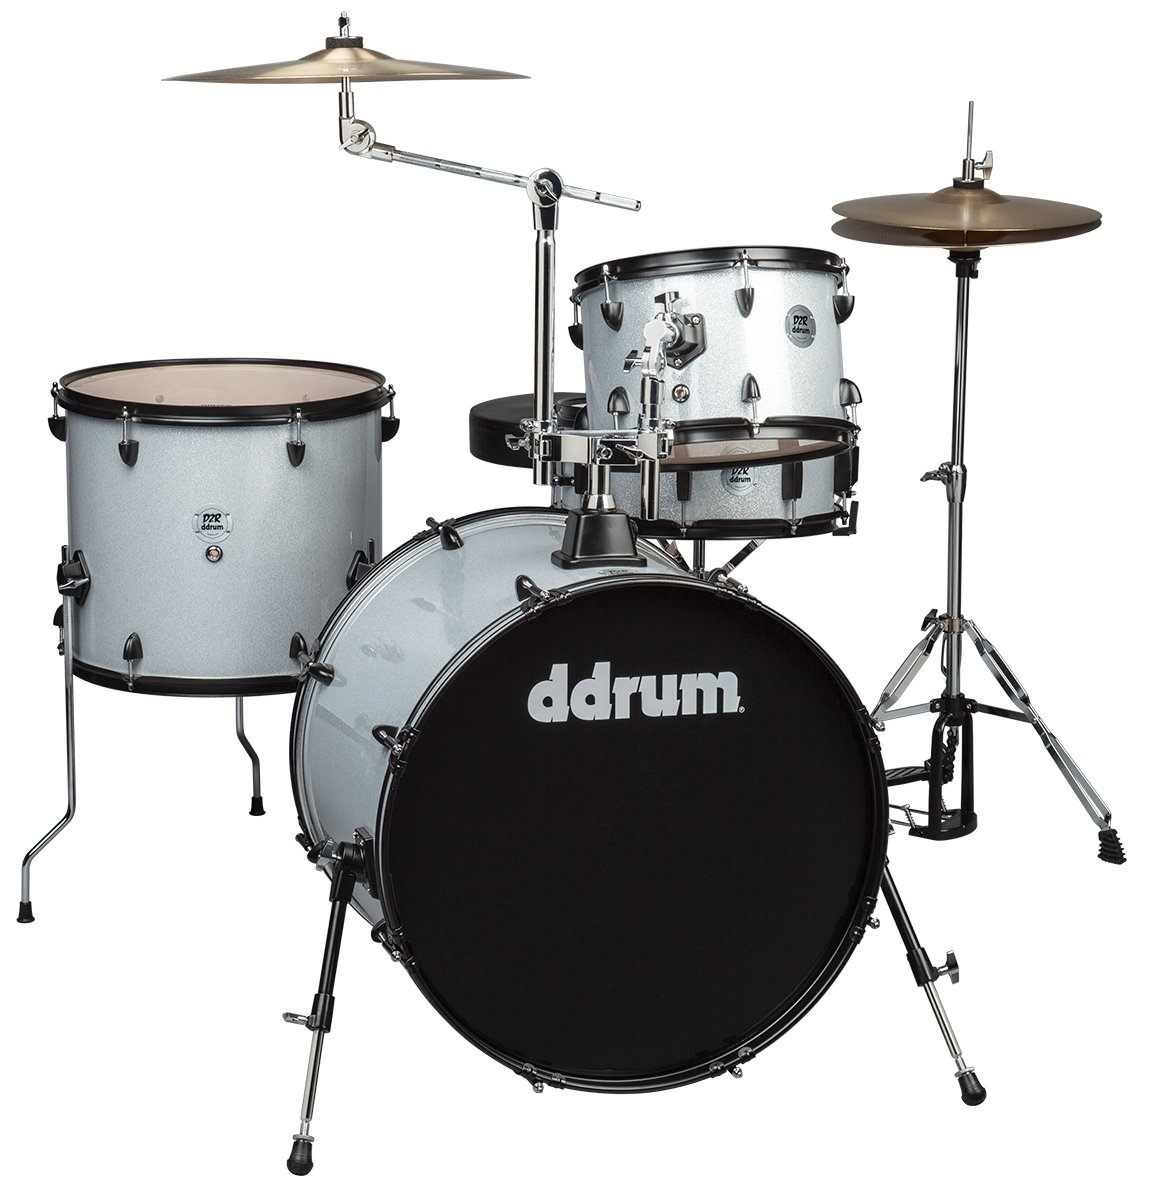 DDRUM D2 Rock Kit Silver Sparkle w/ Cymbals & Hardware